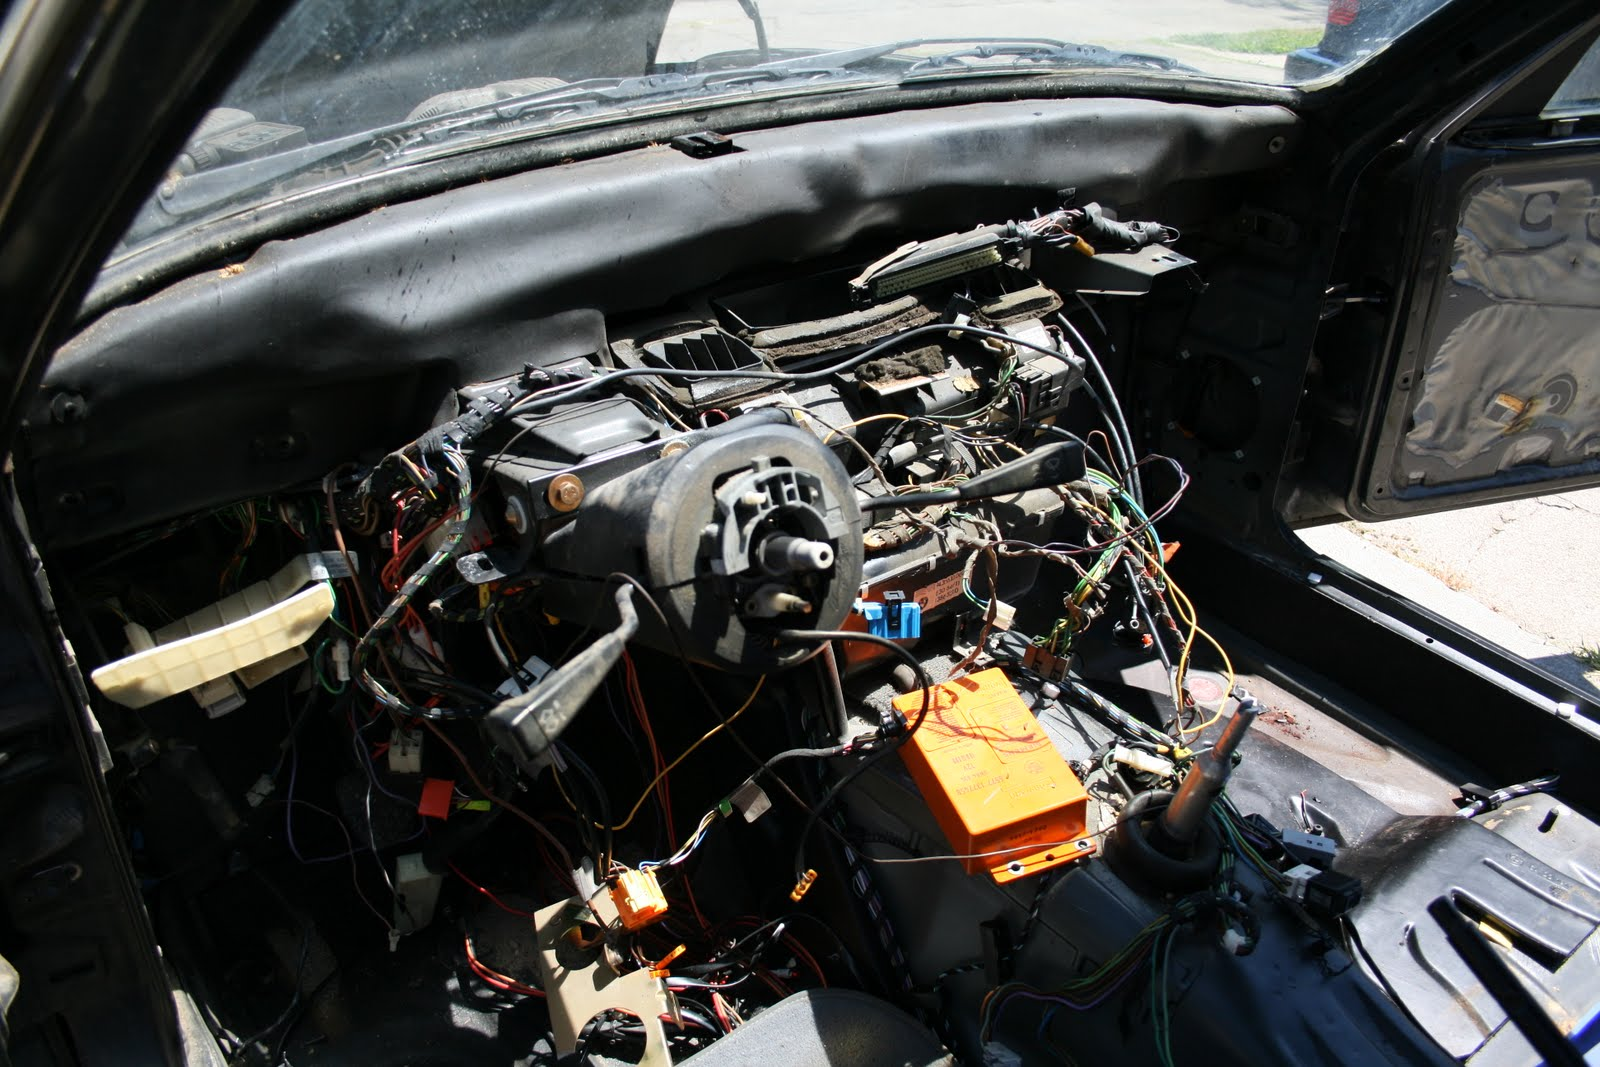 5 Lug E30 Obdi M52 Bmw L6 M6 Electrical Troubleshooting And 87car Wiring Diagram I Think We Will Pull The Airbag Column Install A Non One